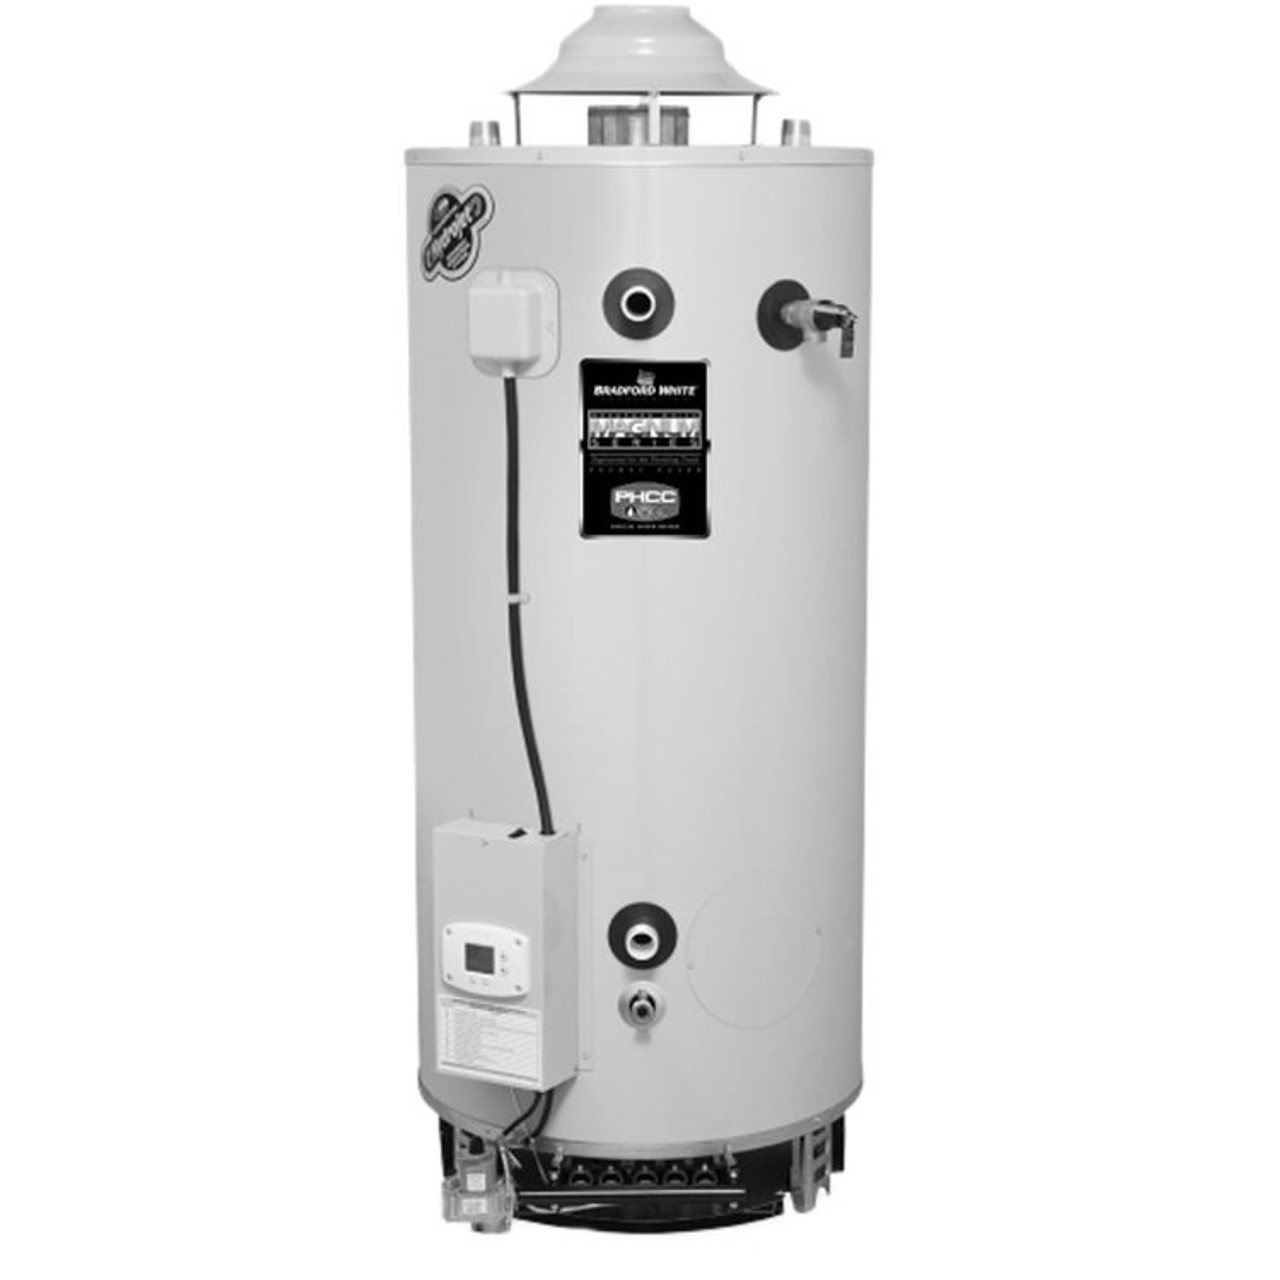 Bradford White Water Heaters >> Bradford White D100l 199 E3n White Magnum Series 100 Gal Commercial Flue Damper Electronic Ignition Energy Saving Gas Water Heater